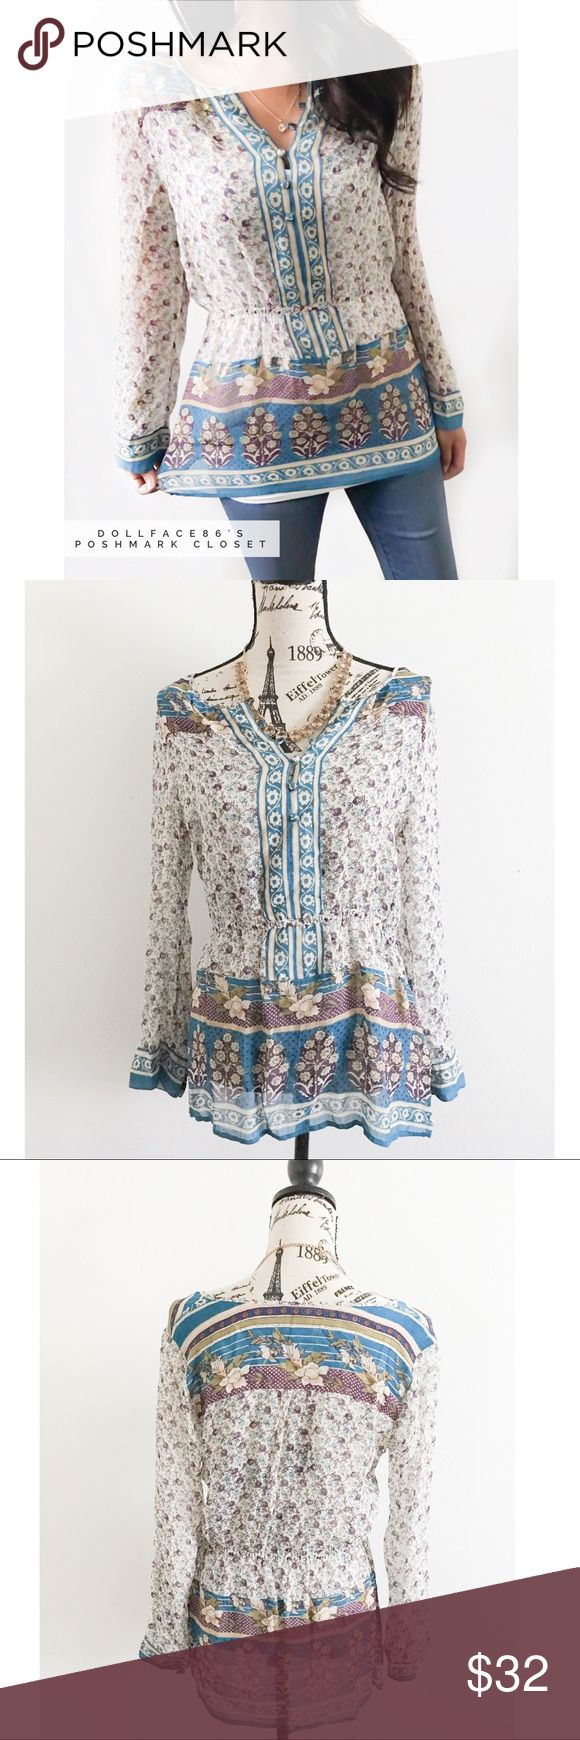 """Lucky Brand Semi Sheer Boho Print Top ✦   ✦{I am not a professional photographer, actual color of item may vary ➾slightly from pics}  ❥chest:19"""" ❥waist:15"""" ❥length:27"""" ❥sleeves:23"""" ➳material/care:polyester/machine wash  ➳fit:true w/a billowy style  ➳condition:gently used   ✦20% off bundles of 3/more items ✦No Trades  ✦NO HOLDS ✦No transactions outside Poshmark  ✦No lowball offers/sales are final Lucky Brand Tops Tunics"""